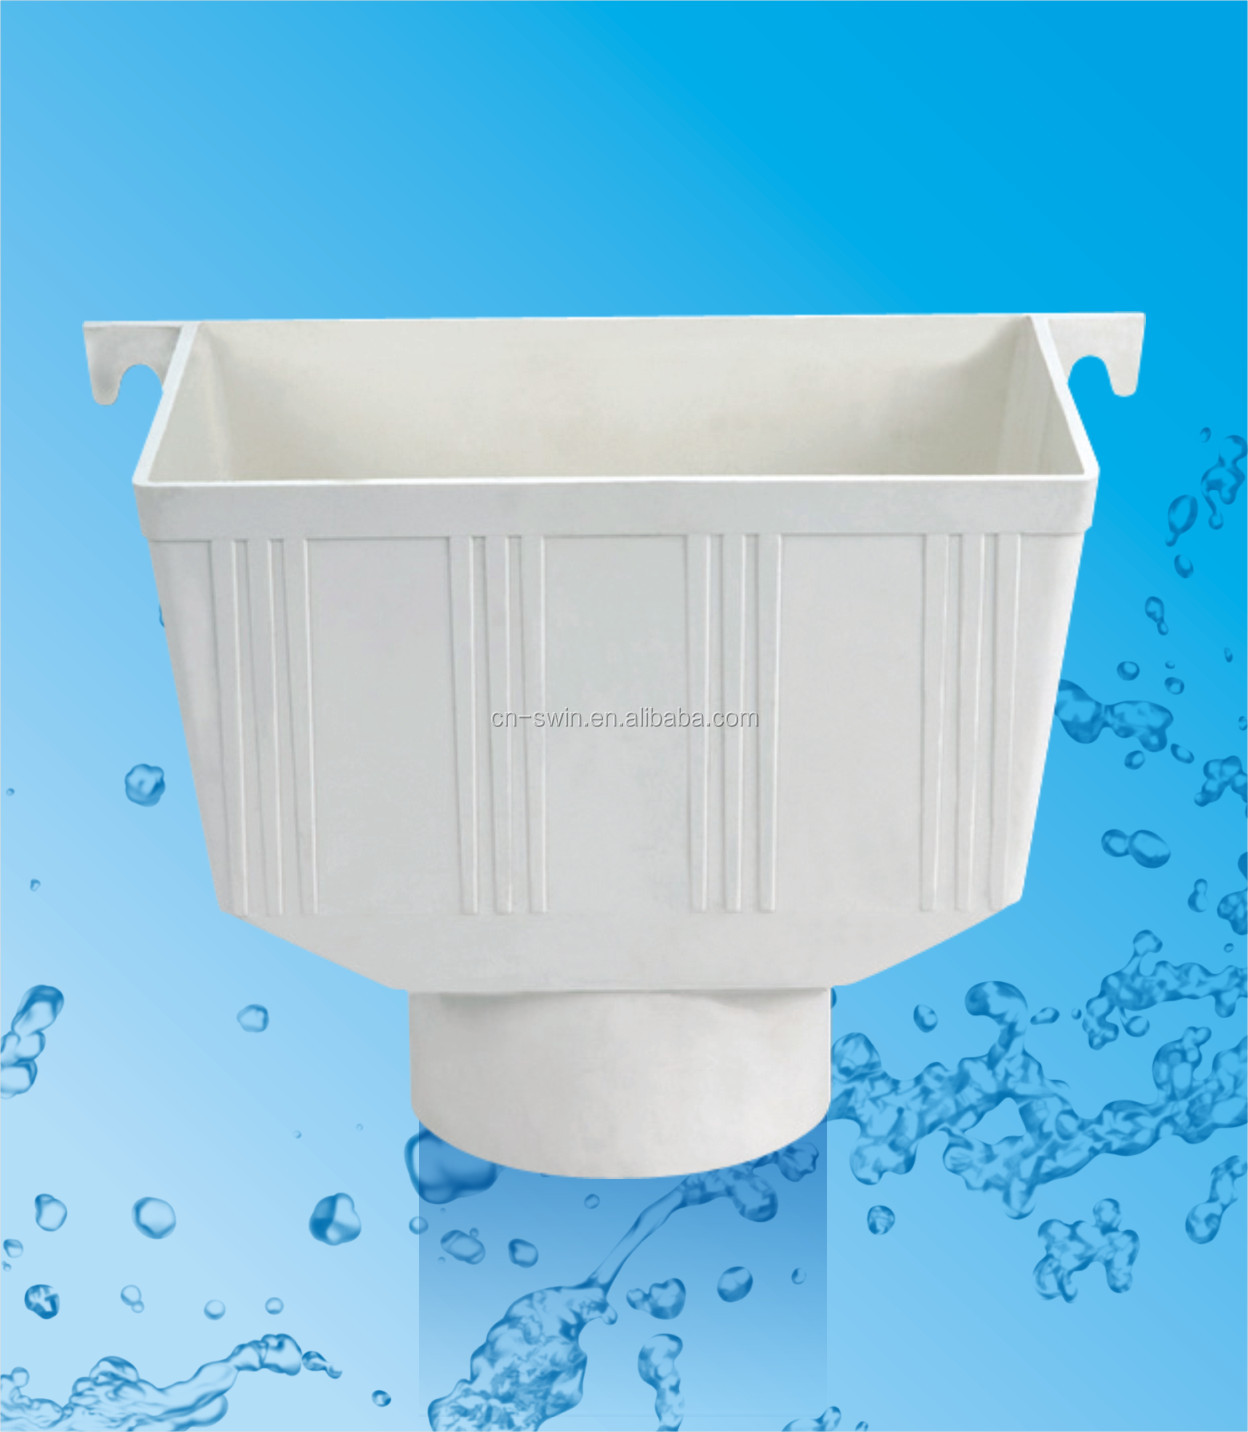 4 Inch Pvc Water Pipe Fitting Rain Roof Drain Water